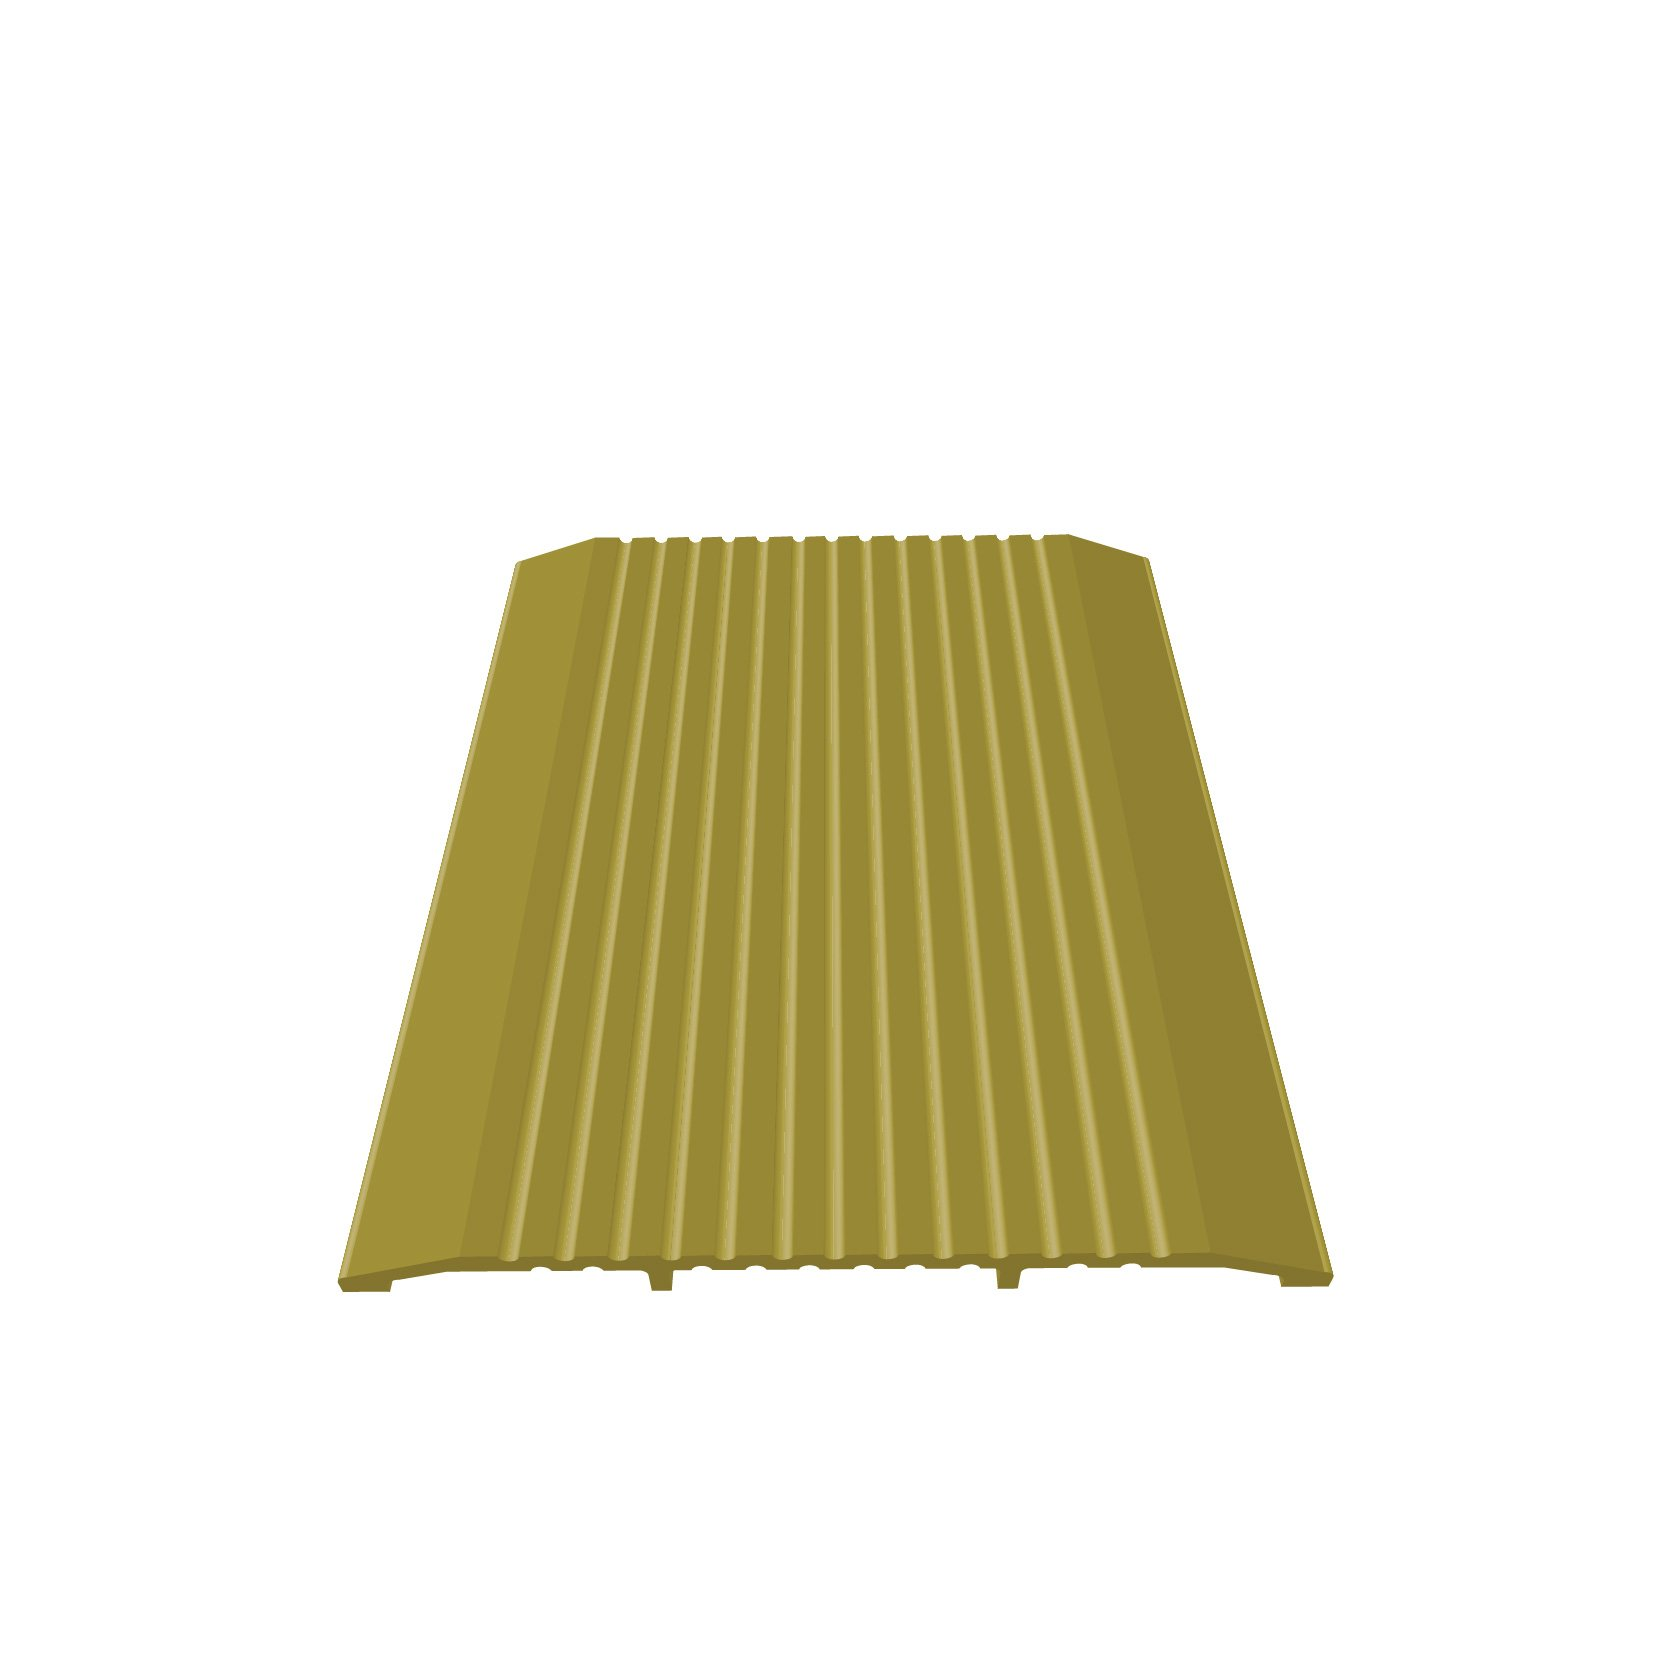 Door Threshold (7''W by 1/2''H) (36'', Bronze) by Legacy Manufacturing, LLC.